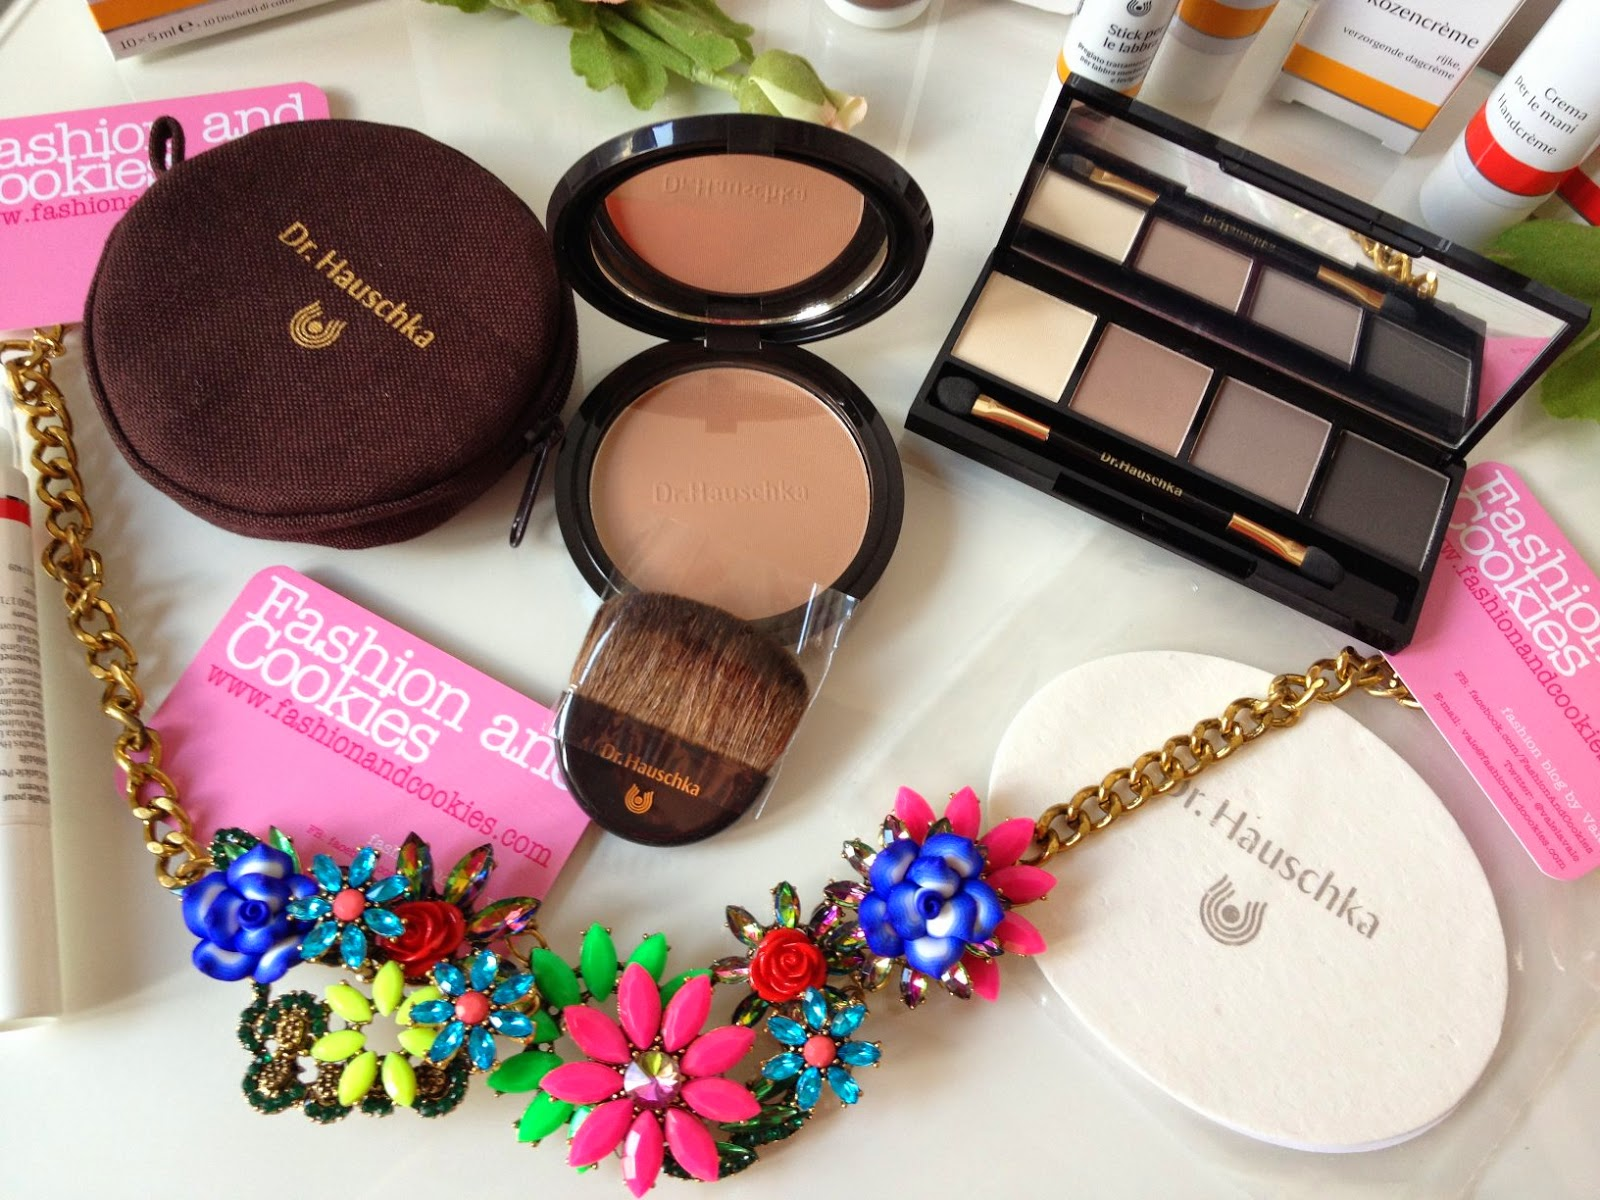 Dr Hauschka make up and skincare, bronzing powder, Fashion and Cookies, fashion blogger